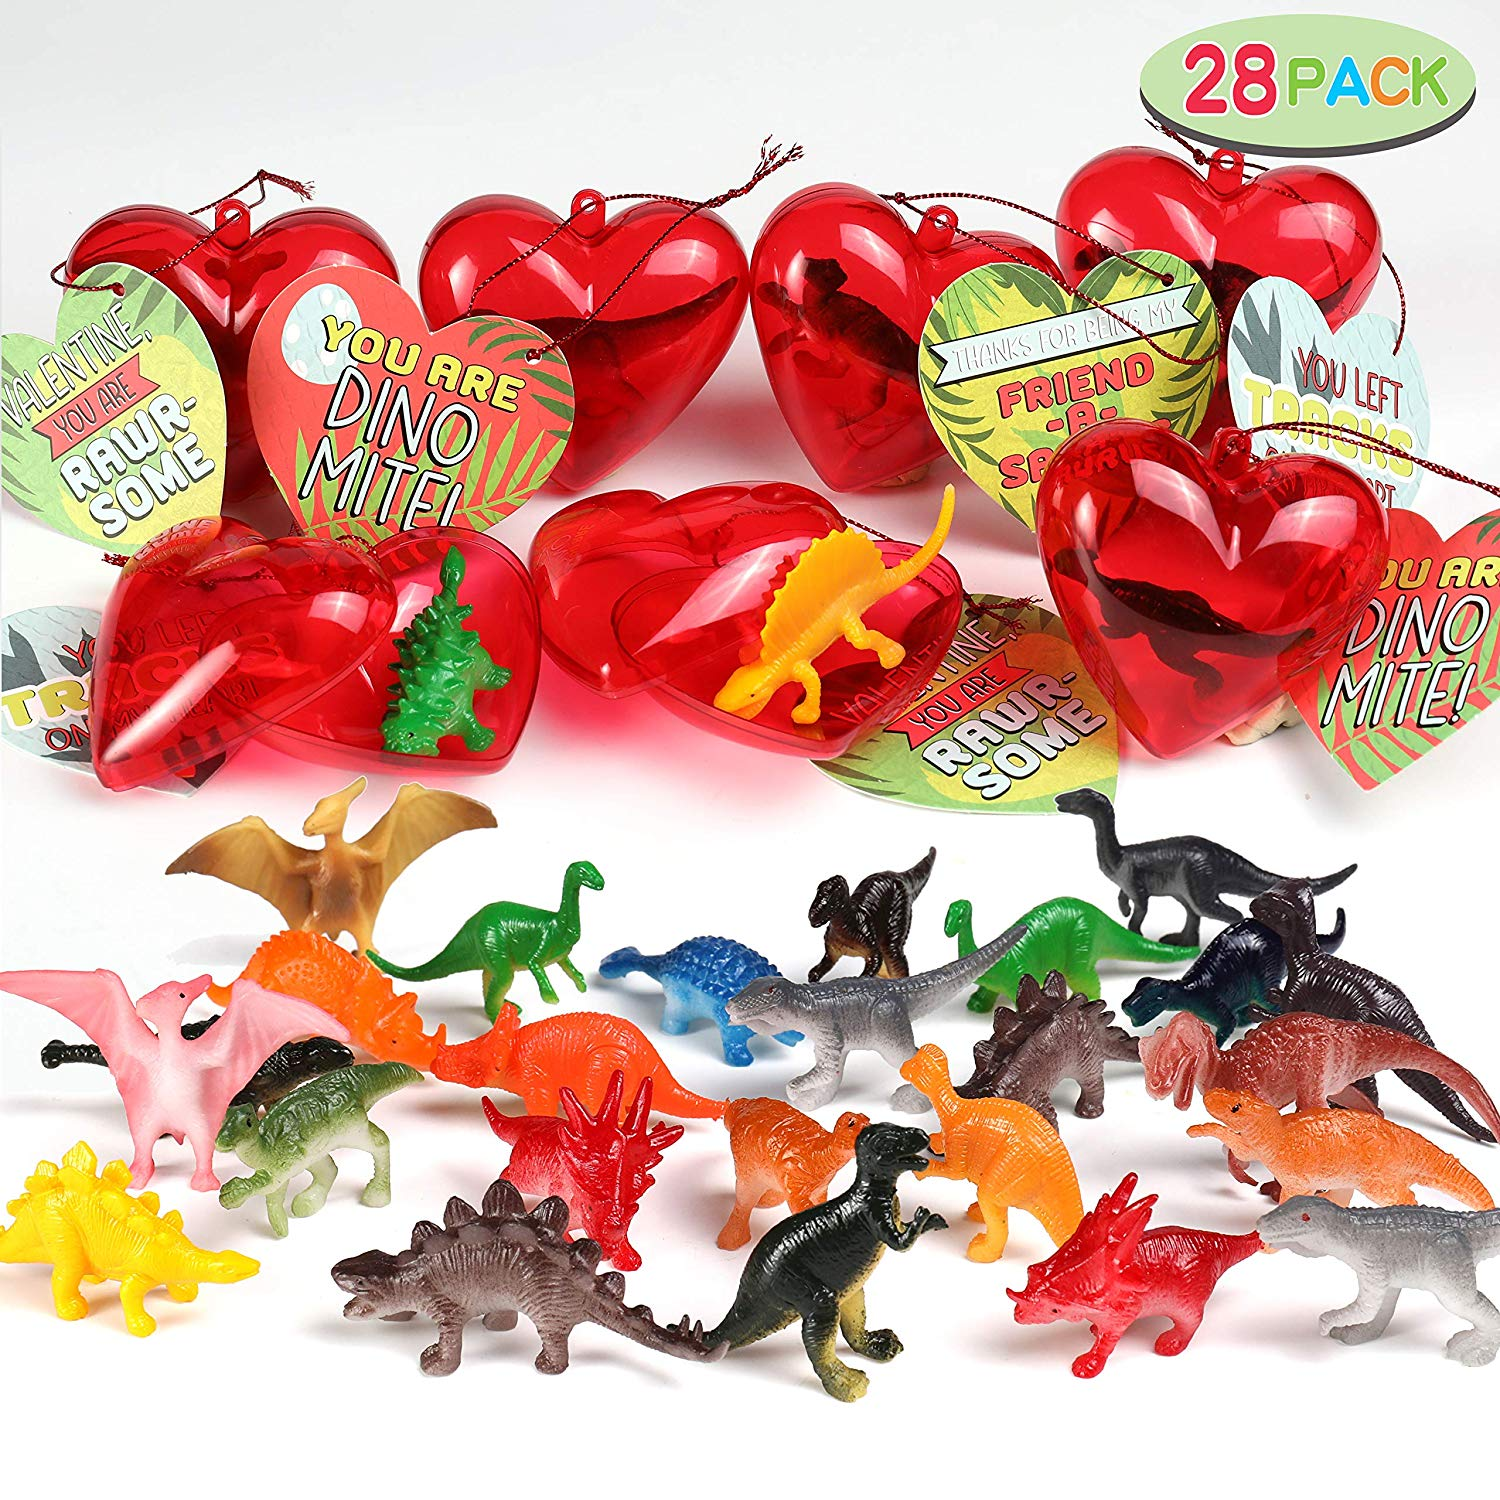 Valentine Party Favors Set with Dinosaur Figures